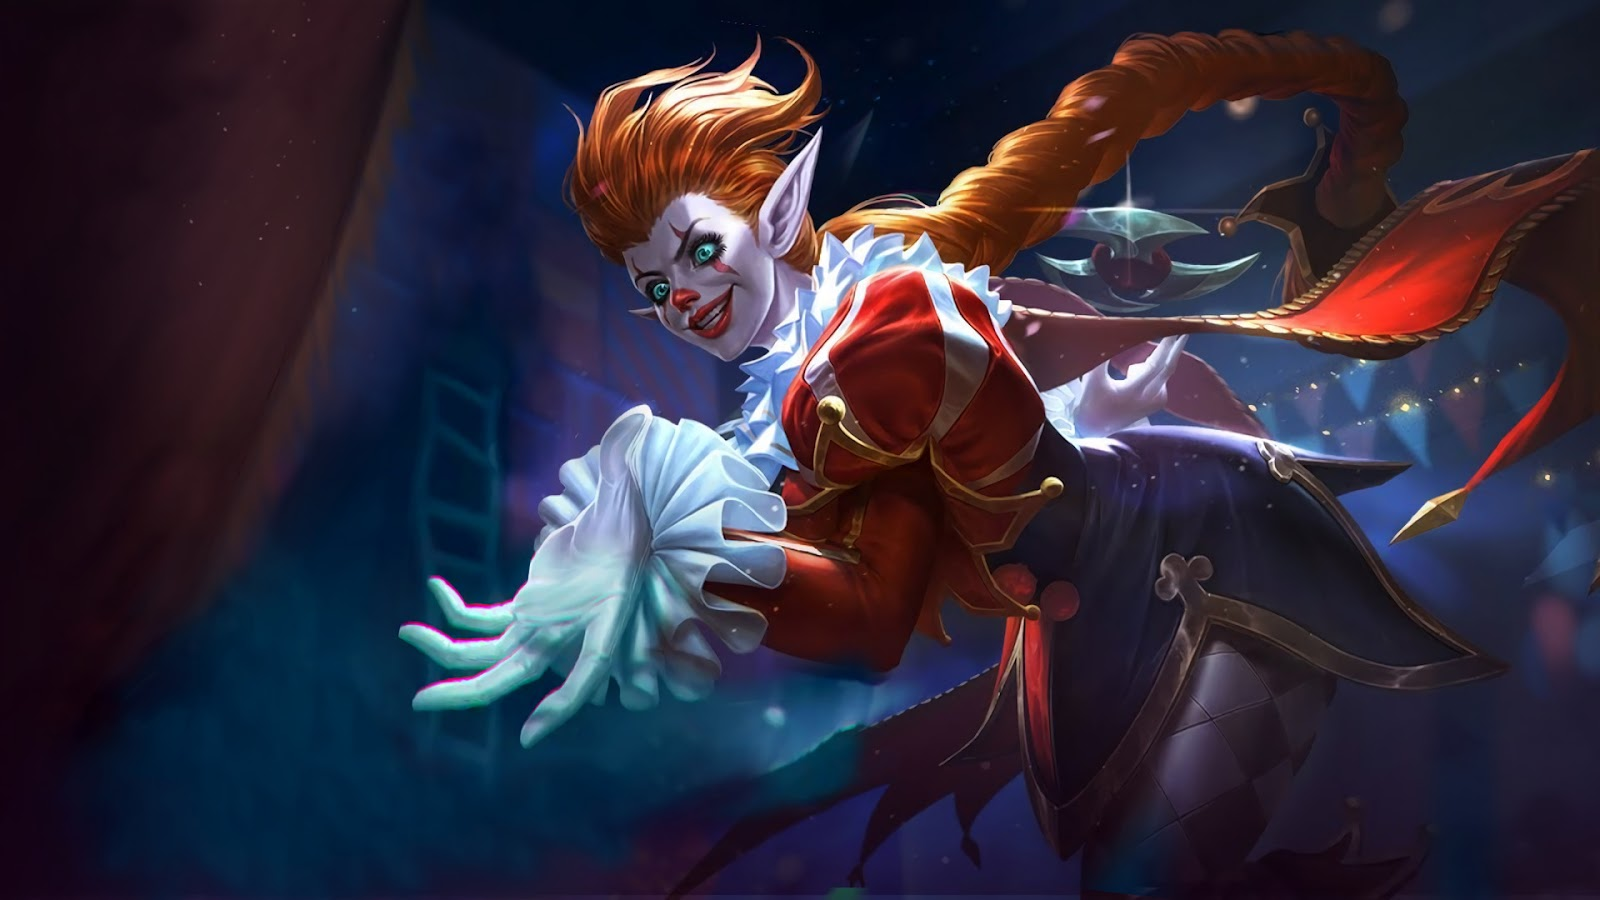 Wallpaper Karrie Jester Skin Mobile Legends HD for PC